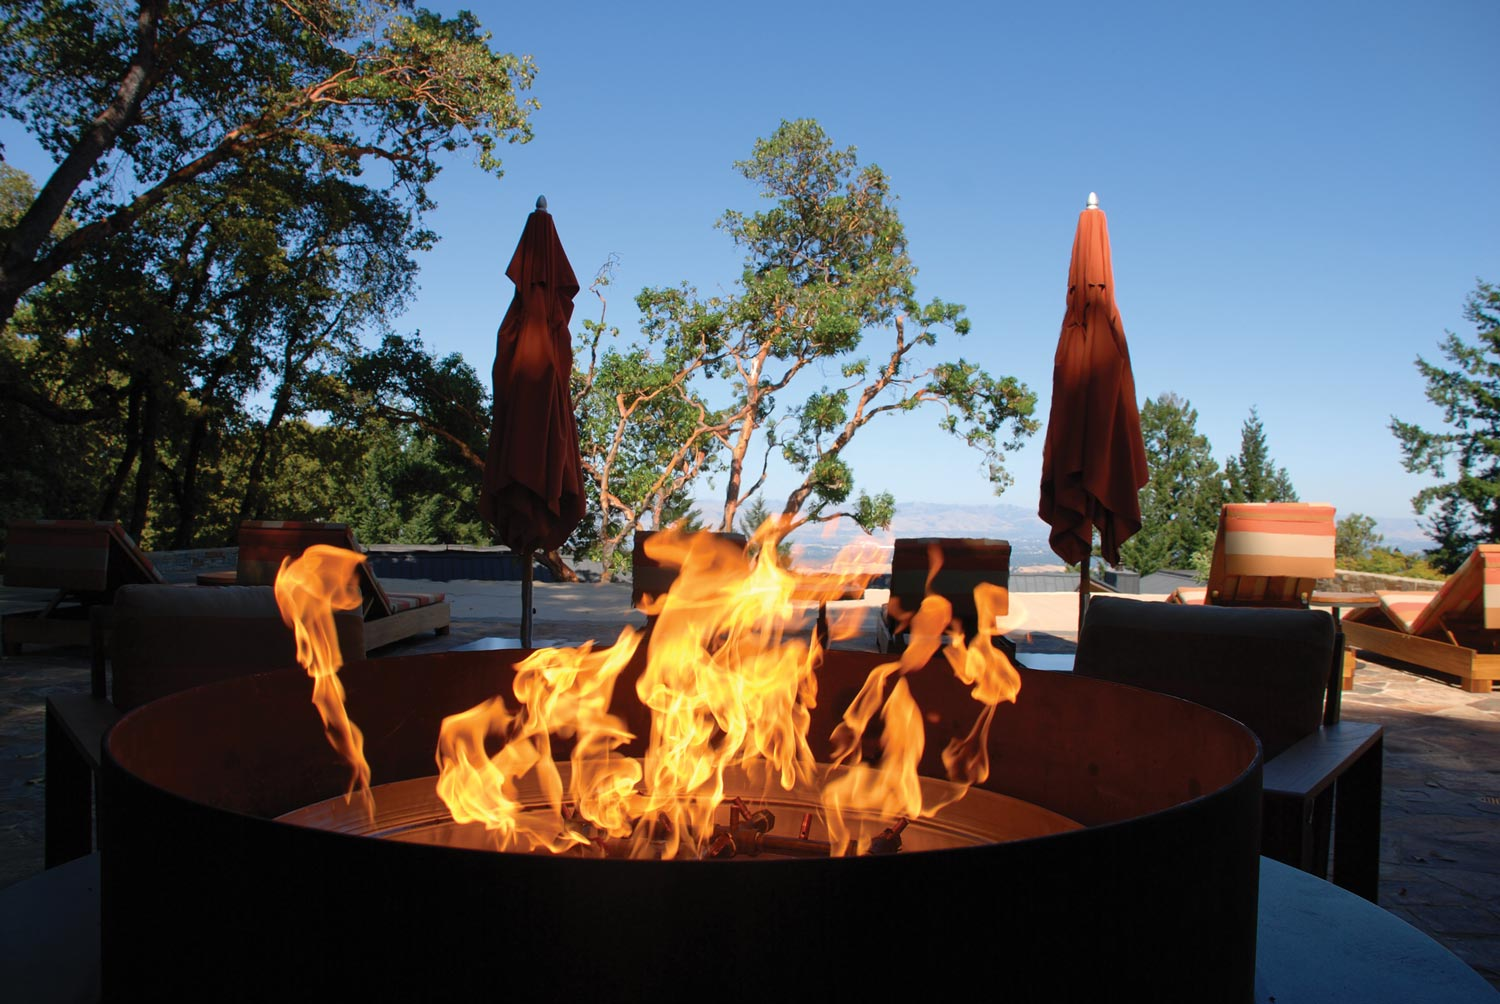 Warming Trends Fire Pits at Chim Chimney Fireplace Pool & Spa